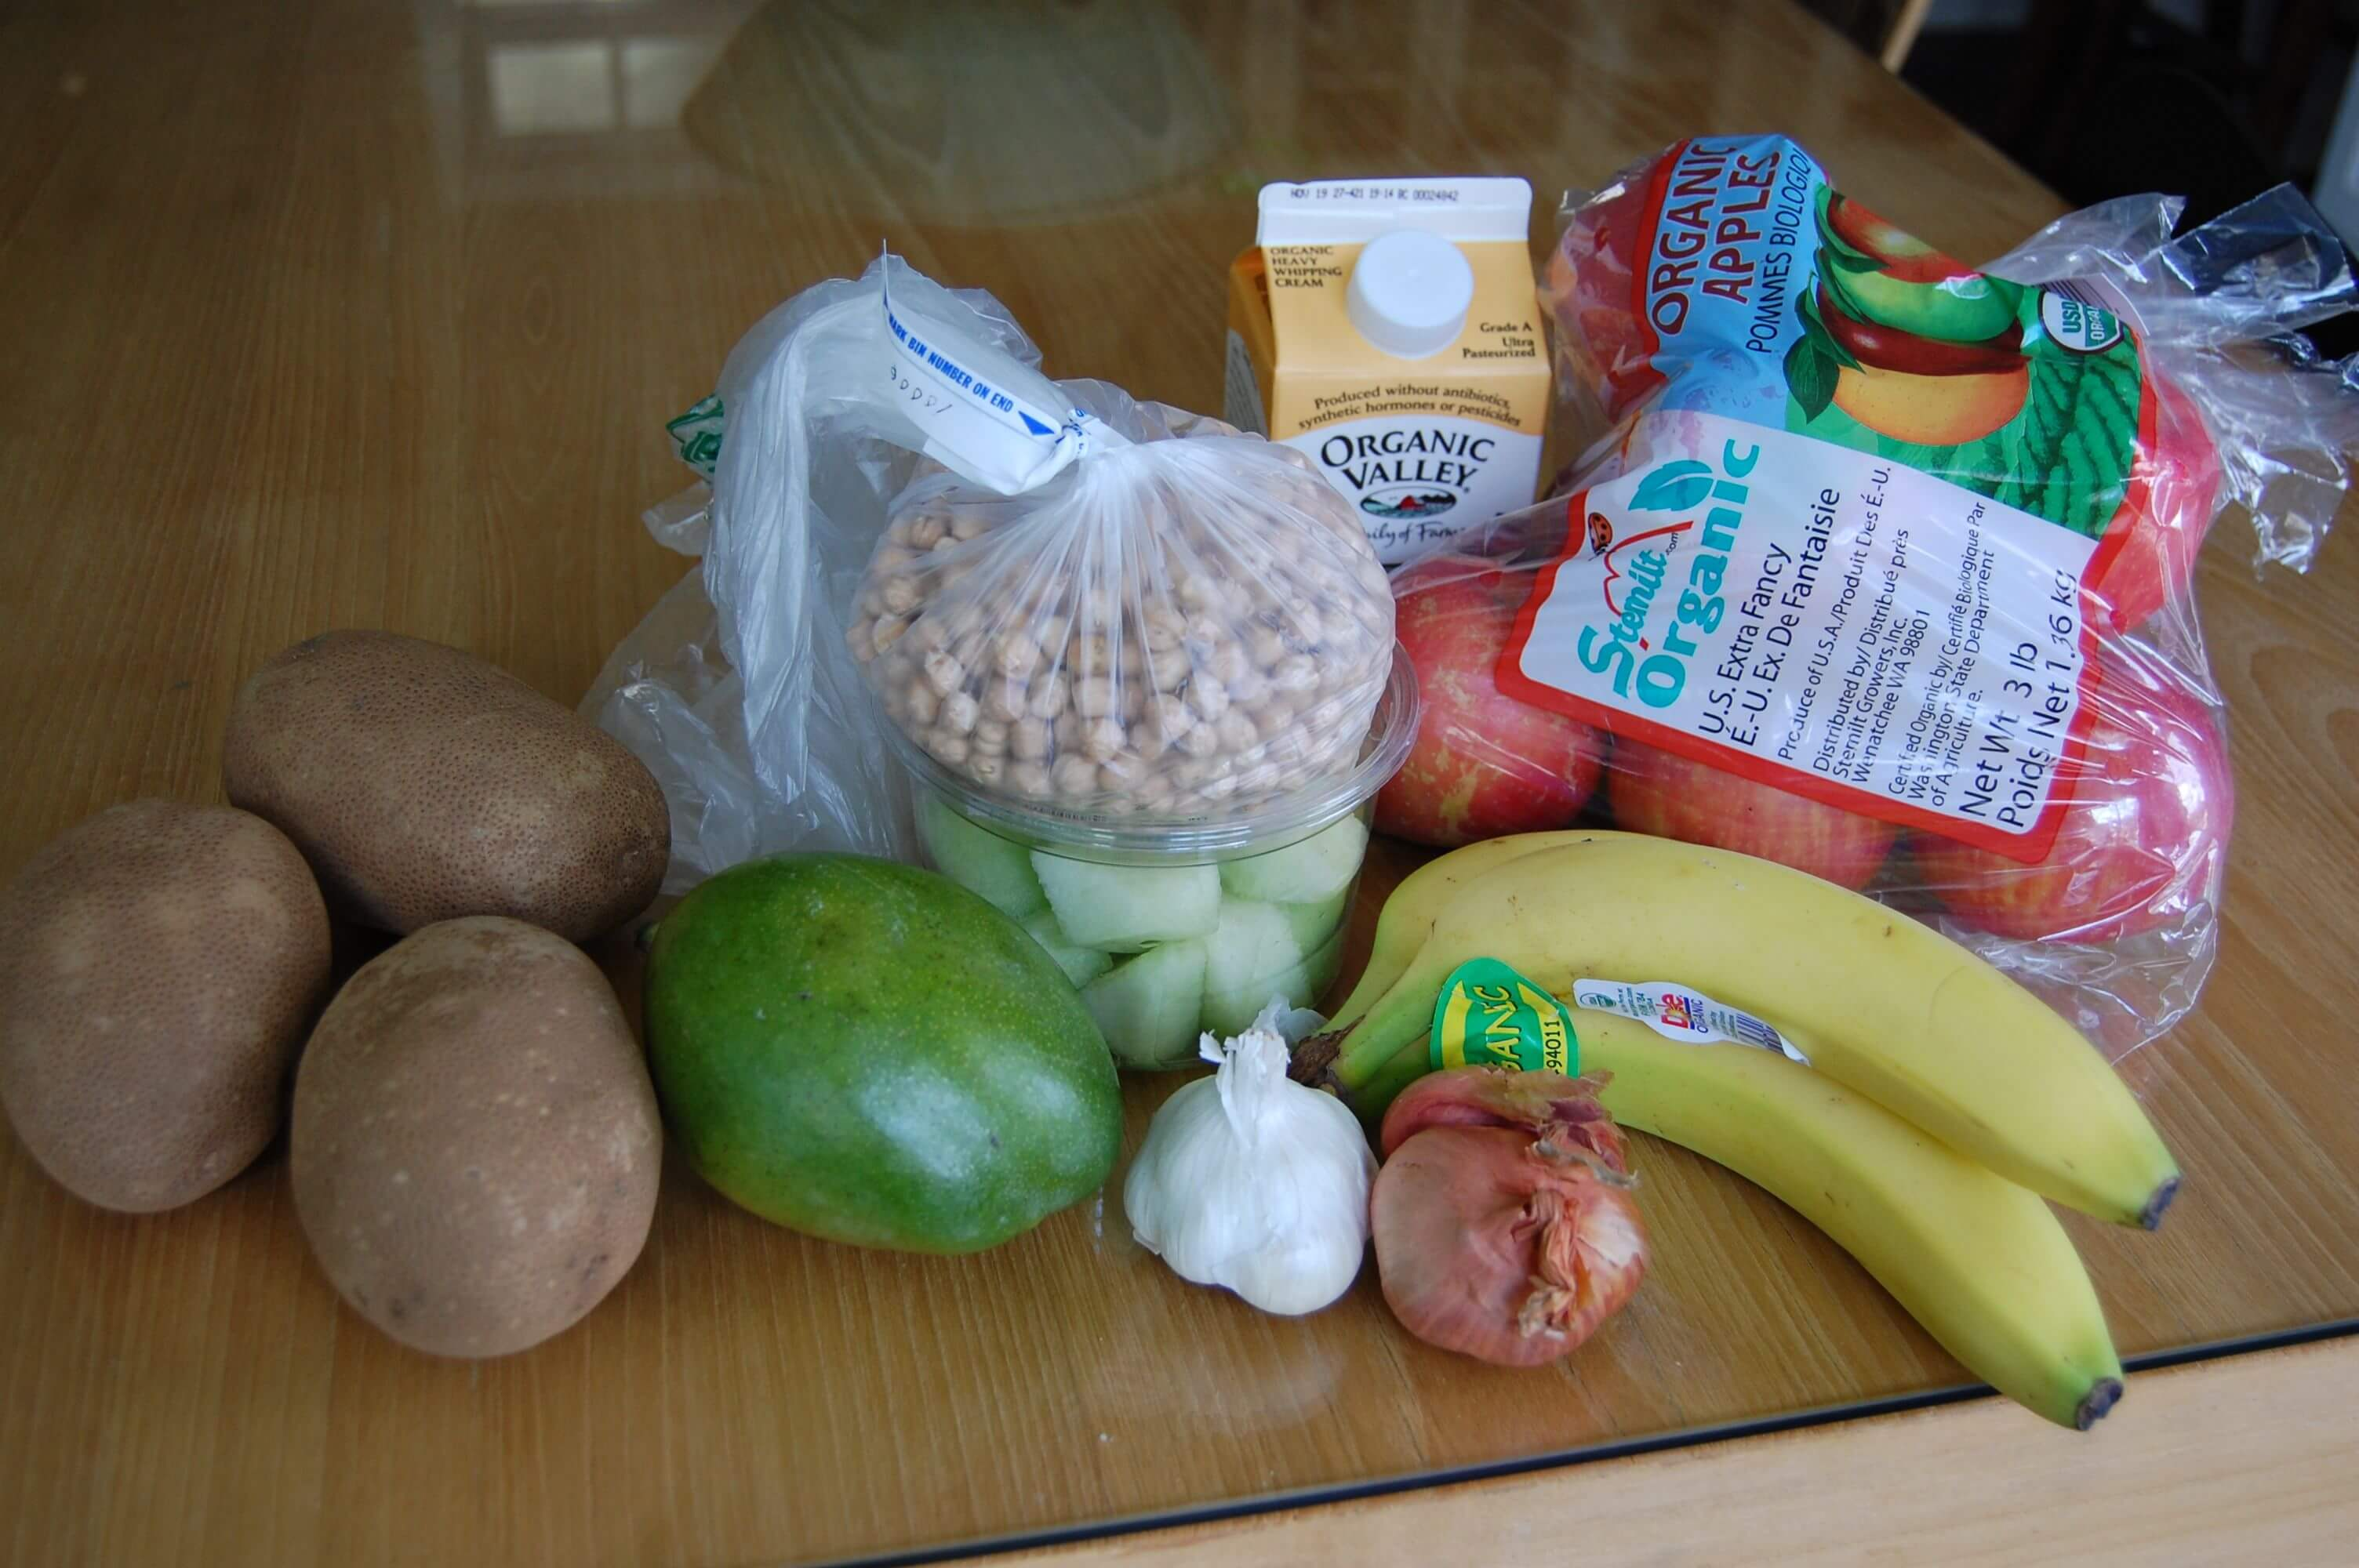 Groceries from Earth Fare that include fresh produce, beans, and heavy cream.